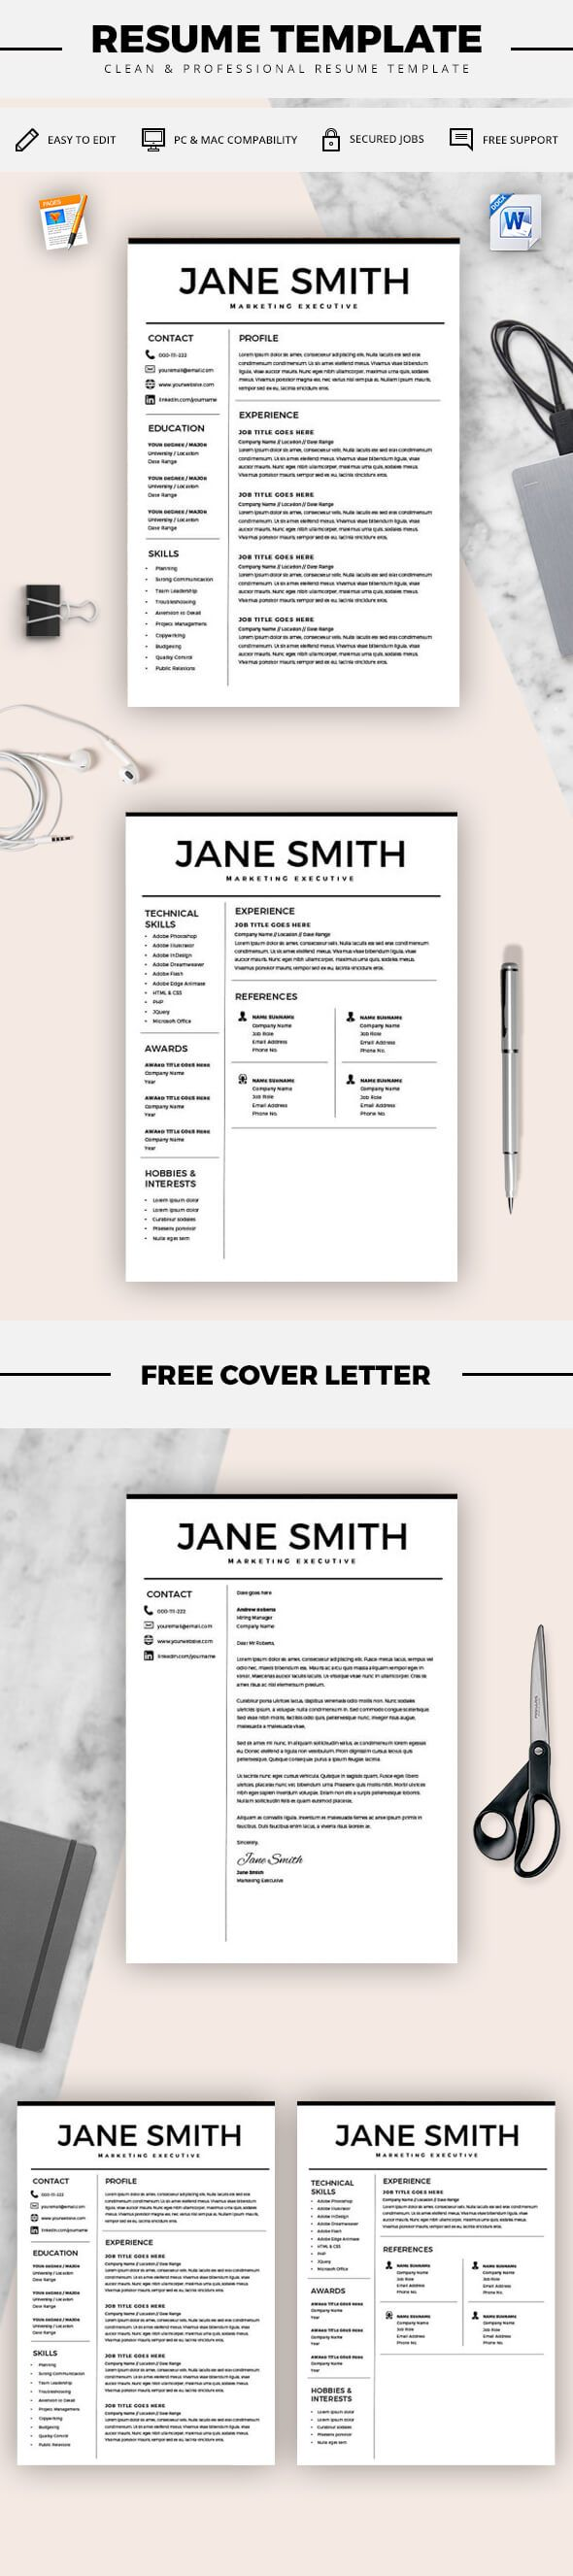 resume for microsoft word minimal resume template cv template free cover letter for